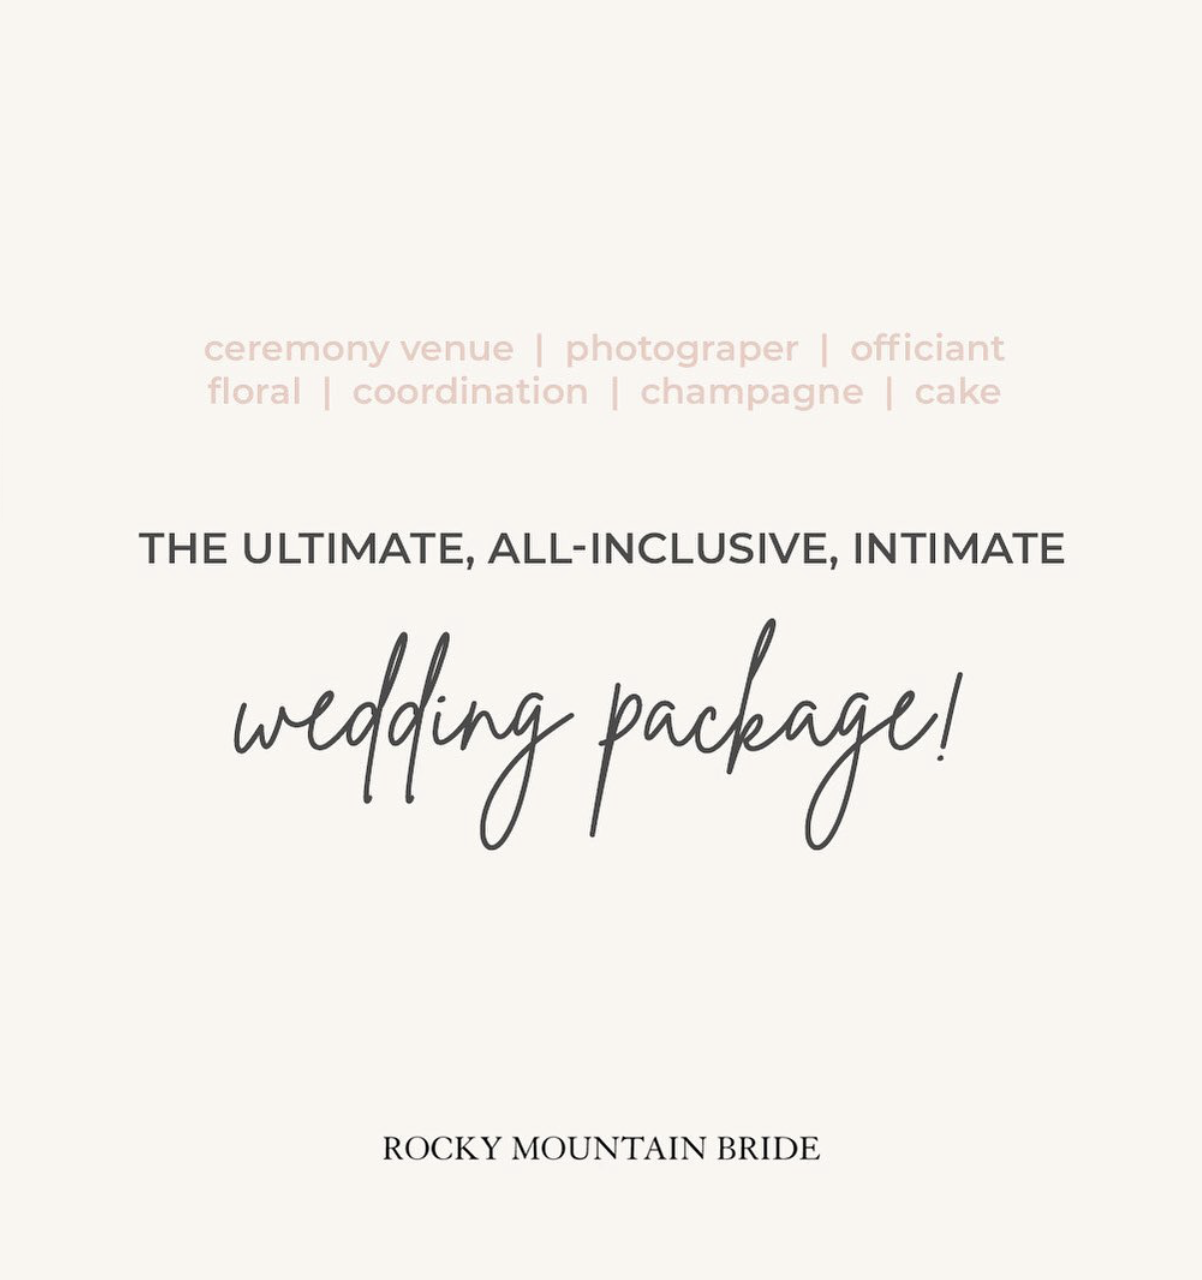 RMB Ad for Intimate Wedding in Breckenridge